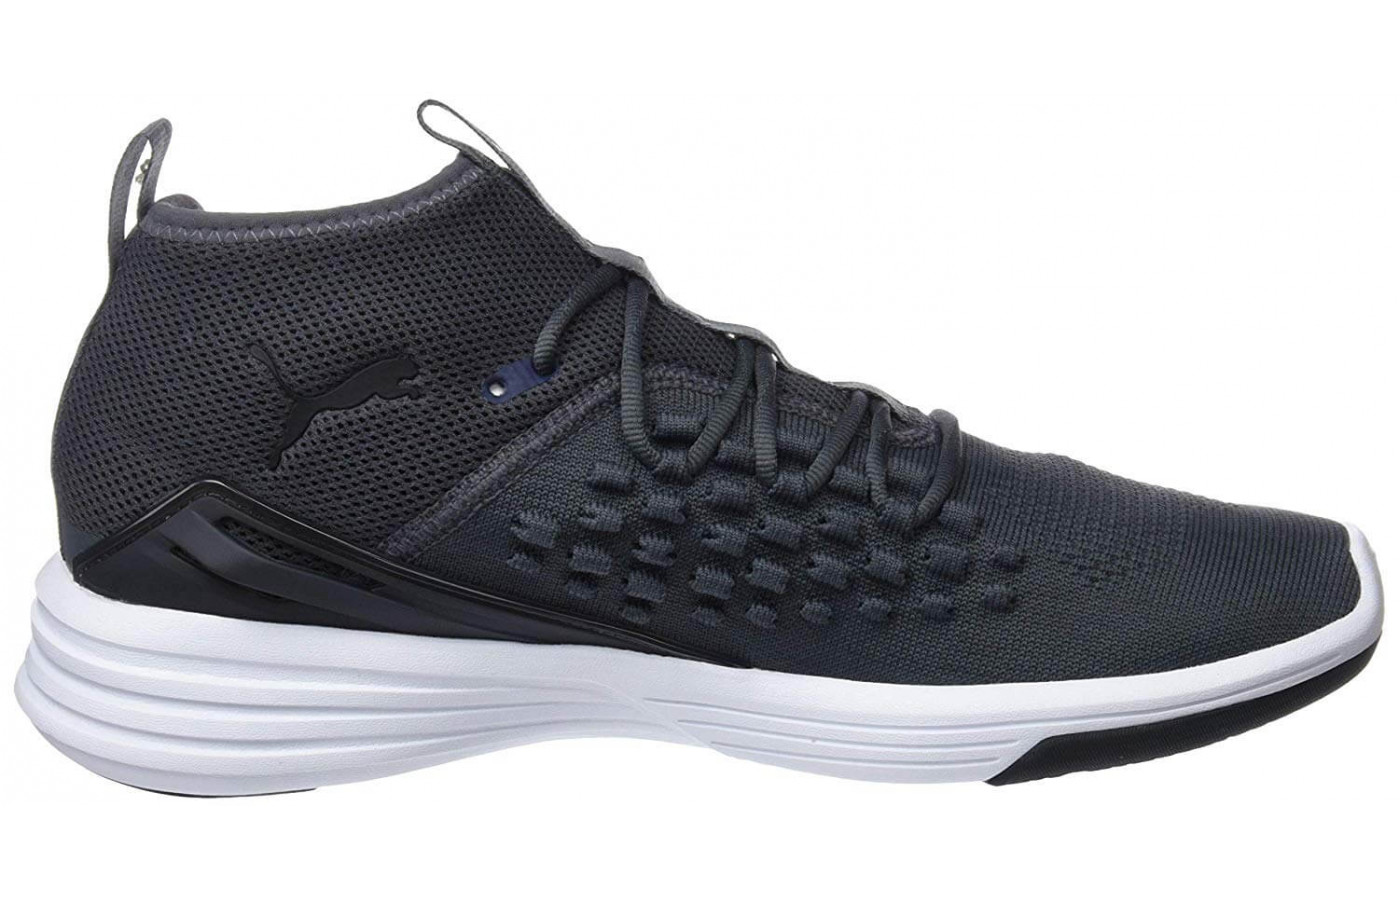 The Mantra Fusefit's dynamic lacing system ensures a secure fit